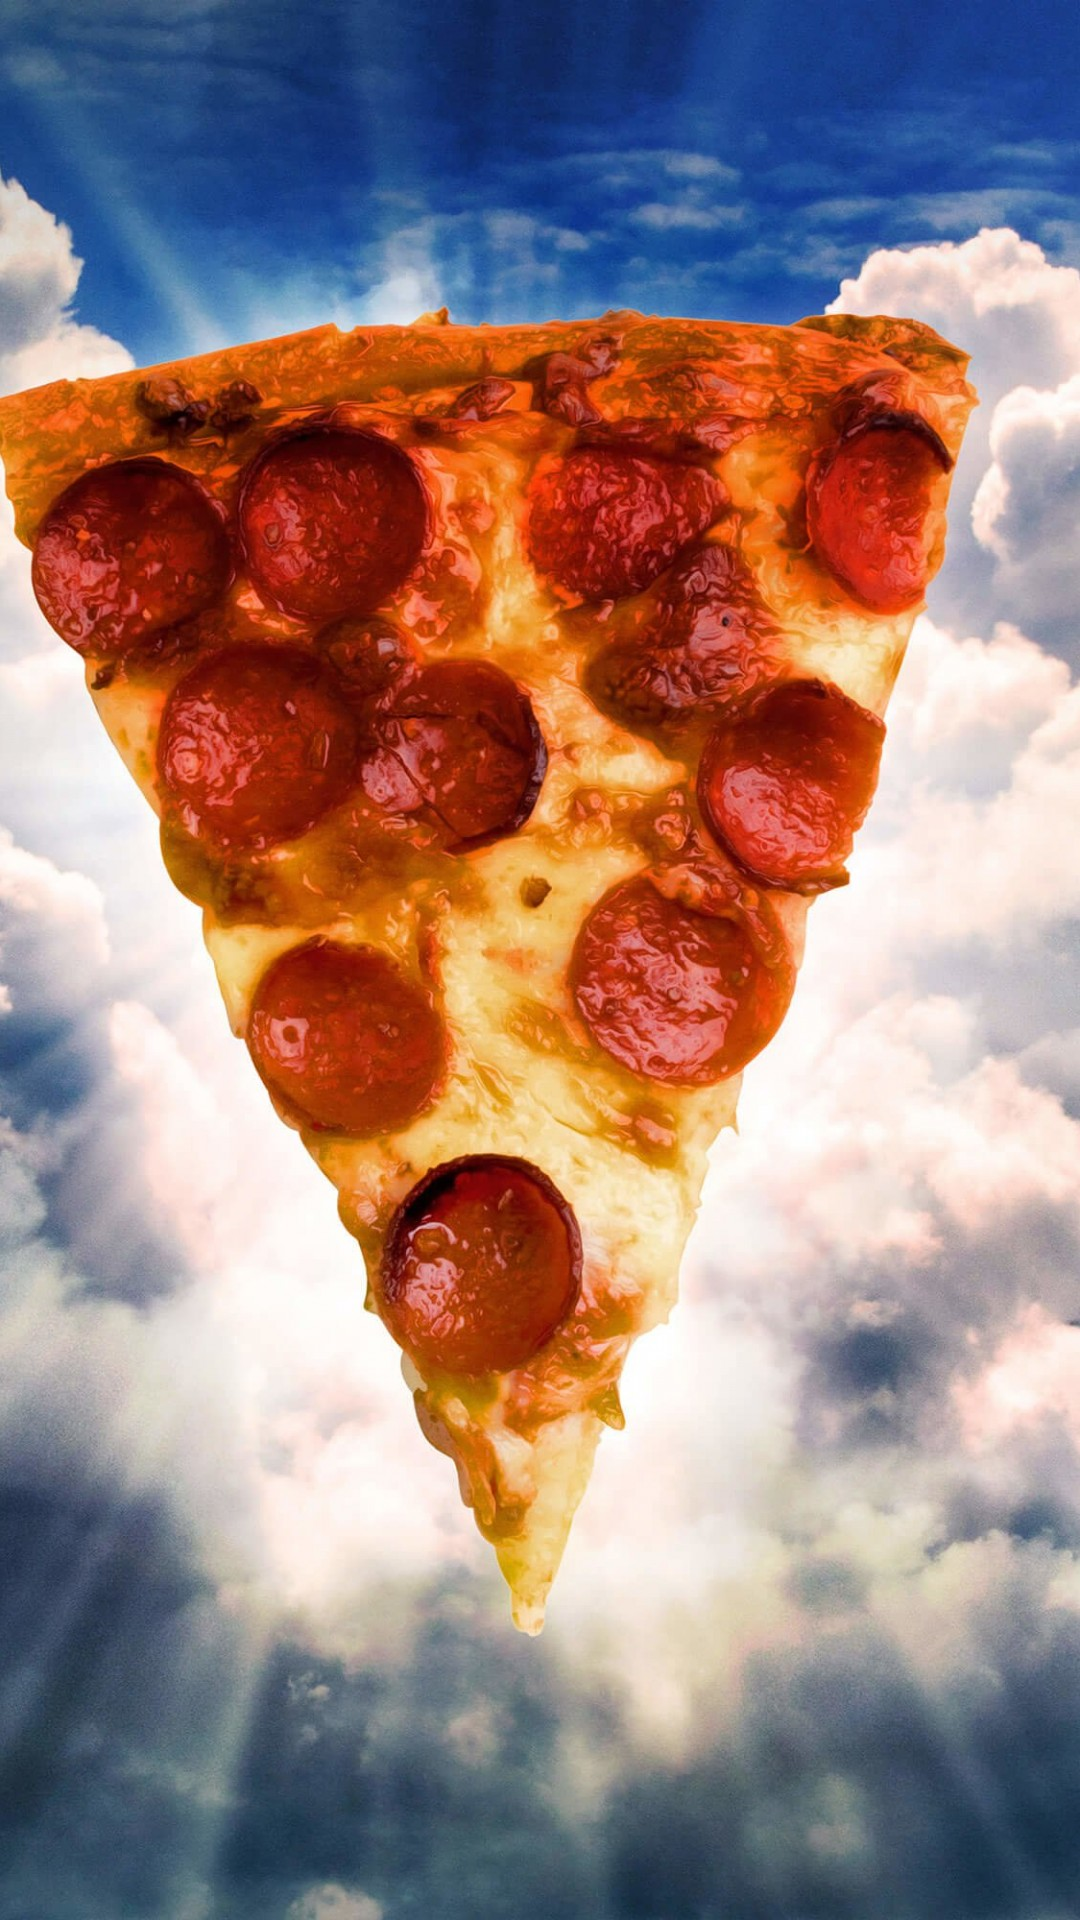 Holy Pizza Wallpaper for Google Nexus 5